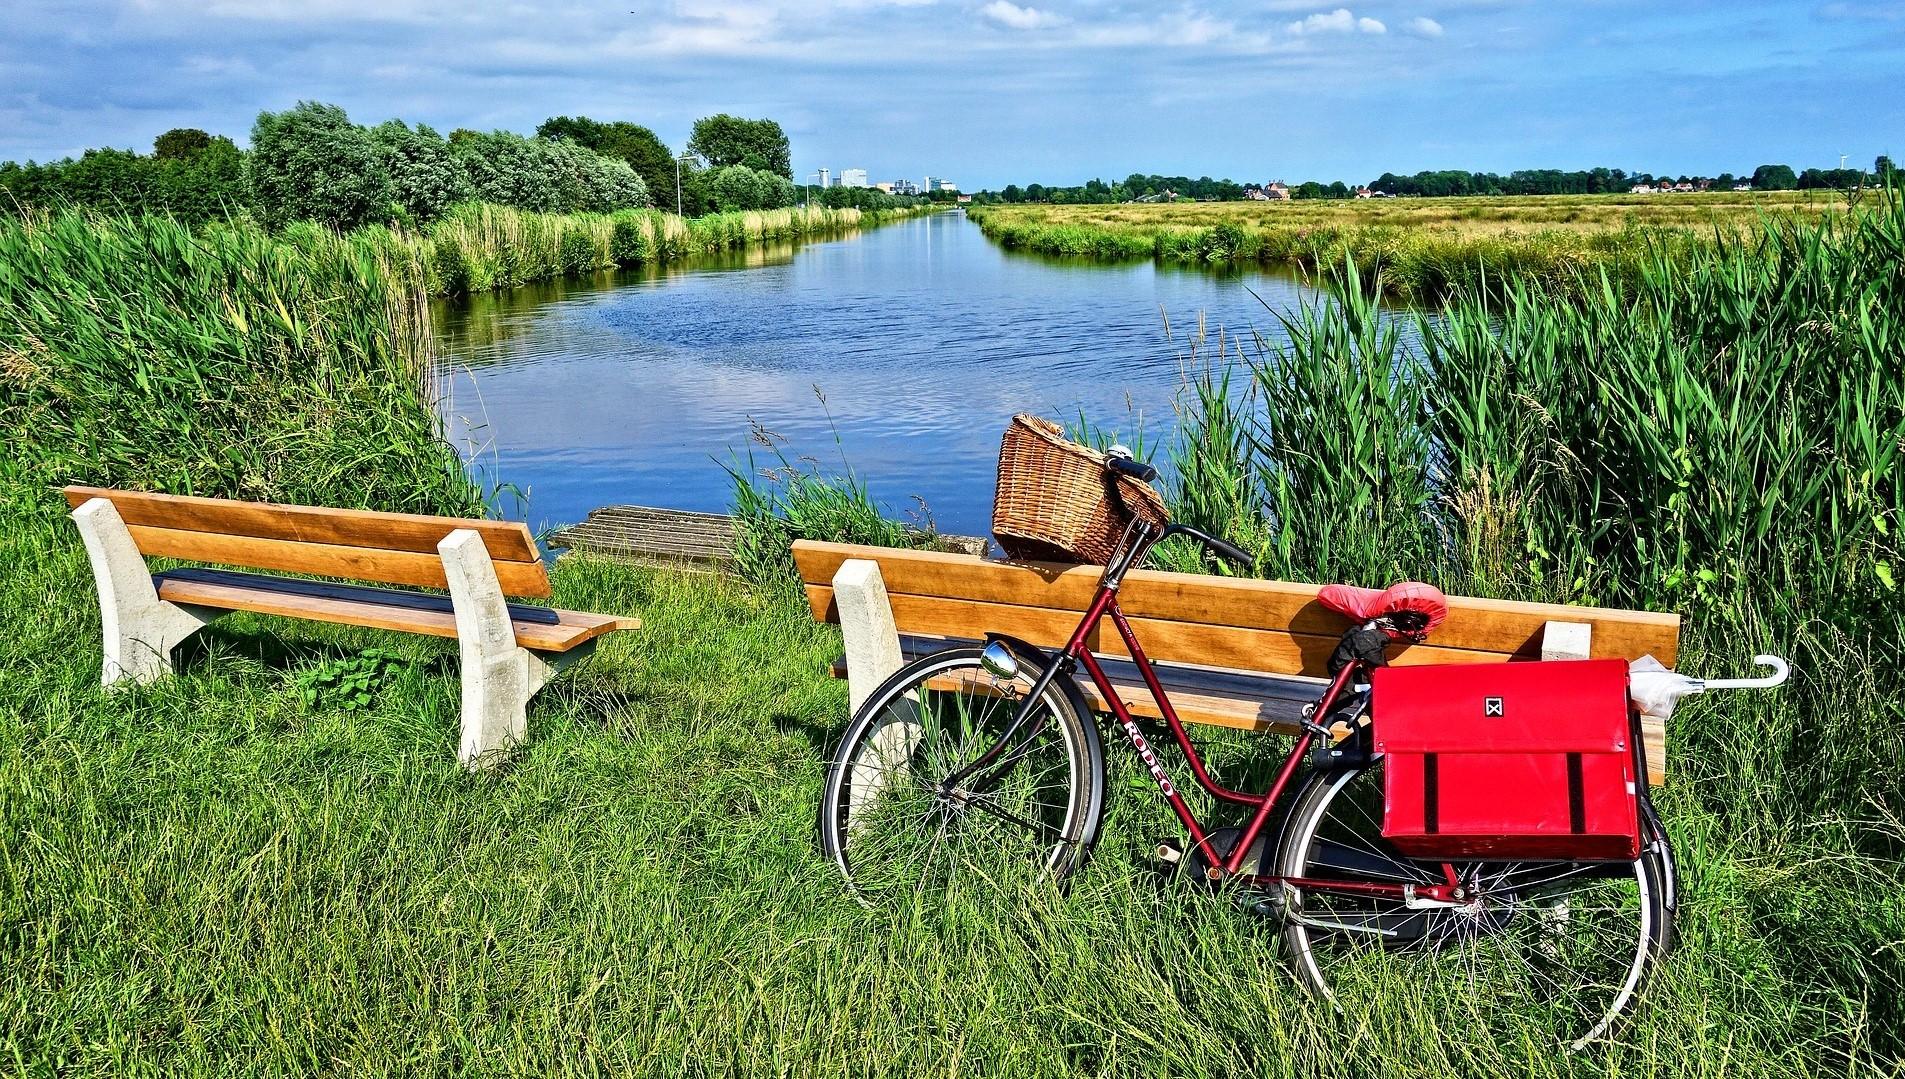 Dutch bicycle canal